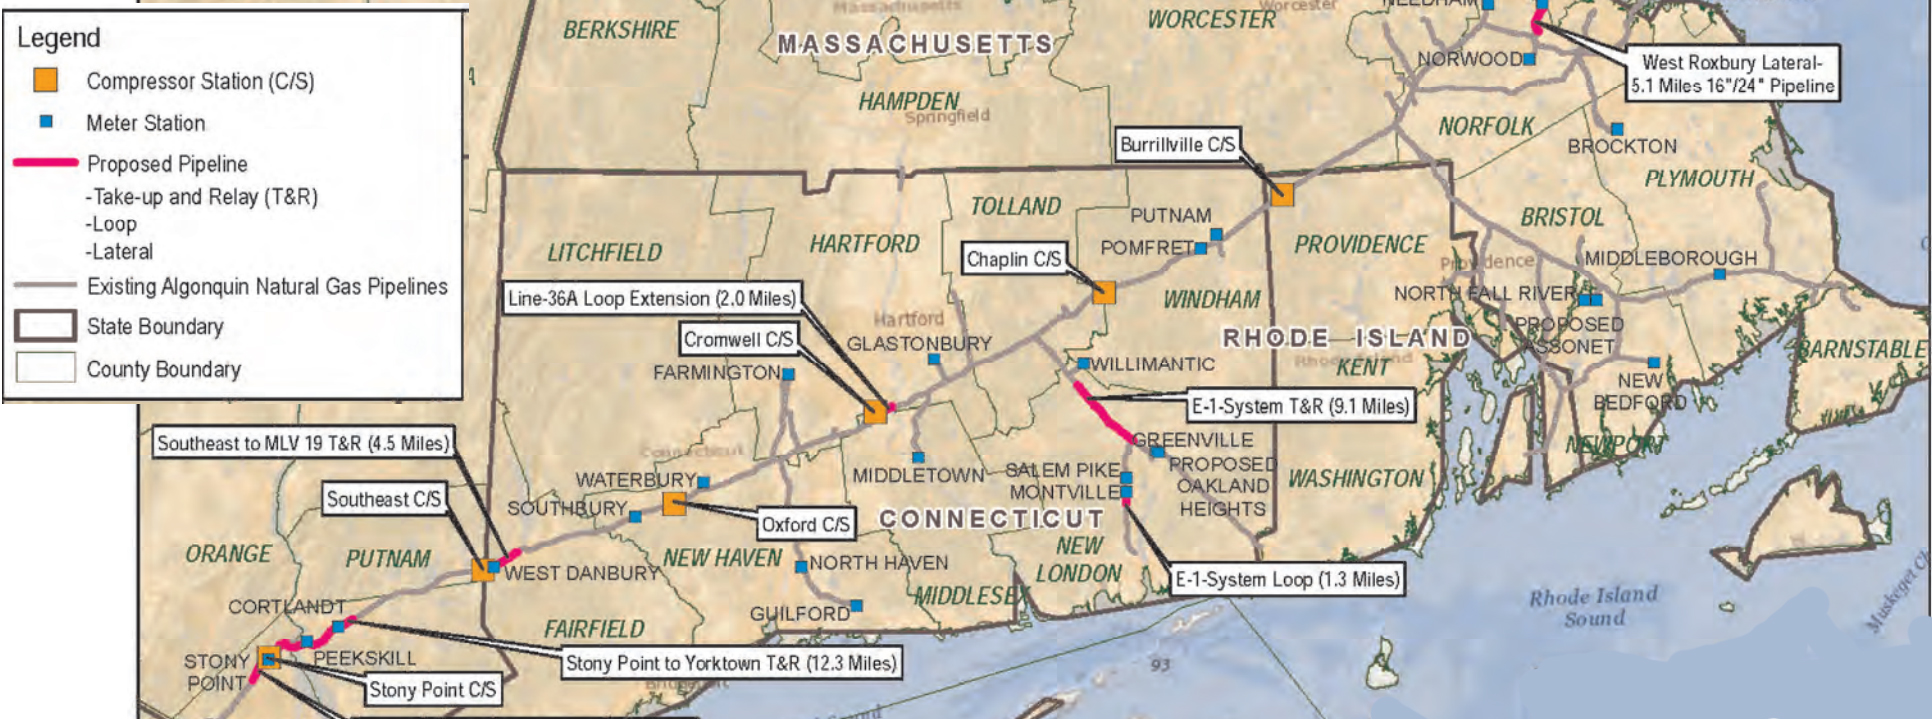 Murphy and Blumenthal are hedging on Algonquin pipeline issue